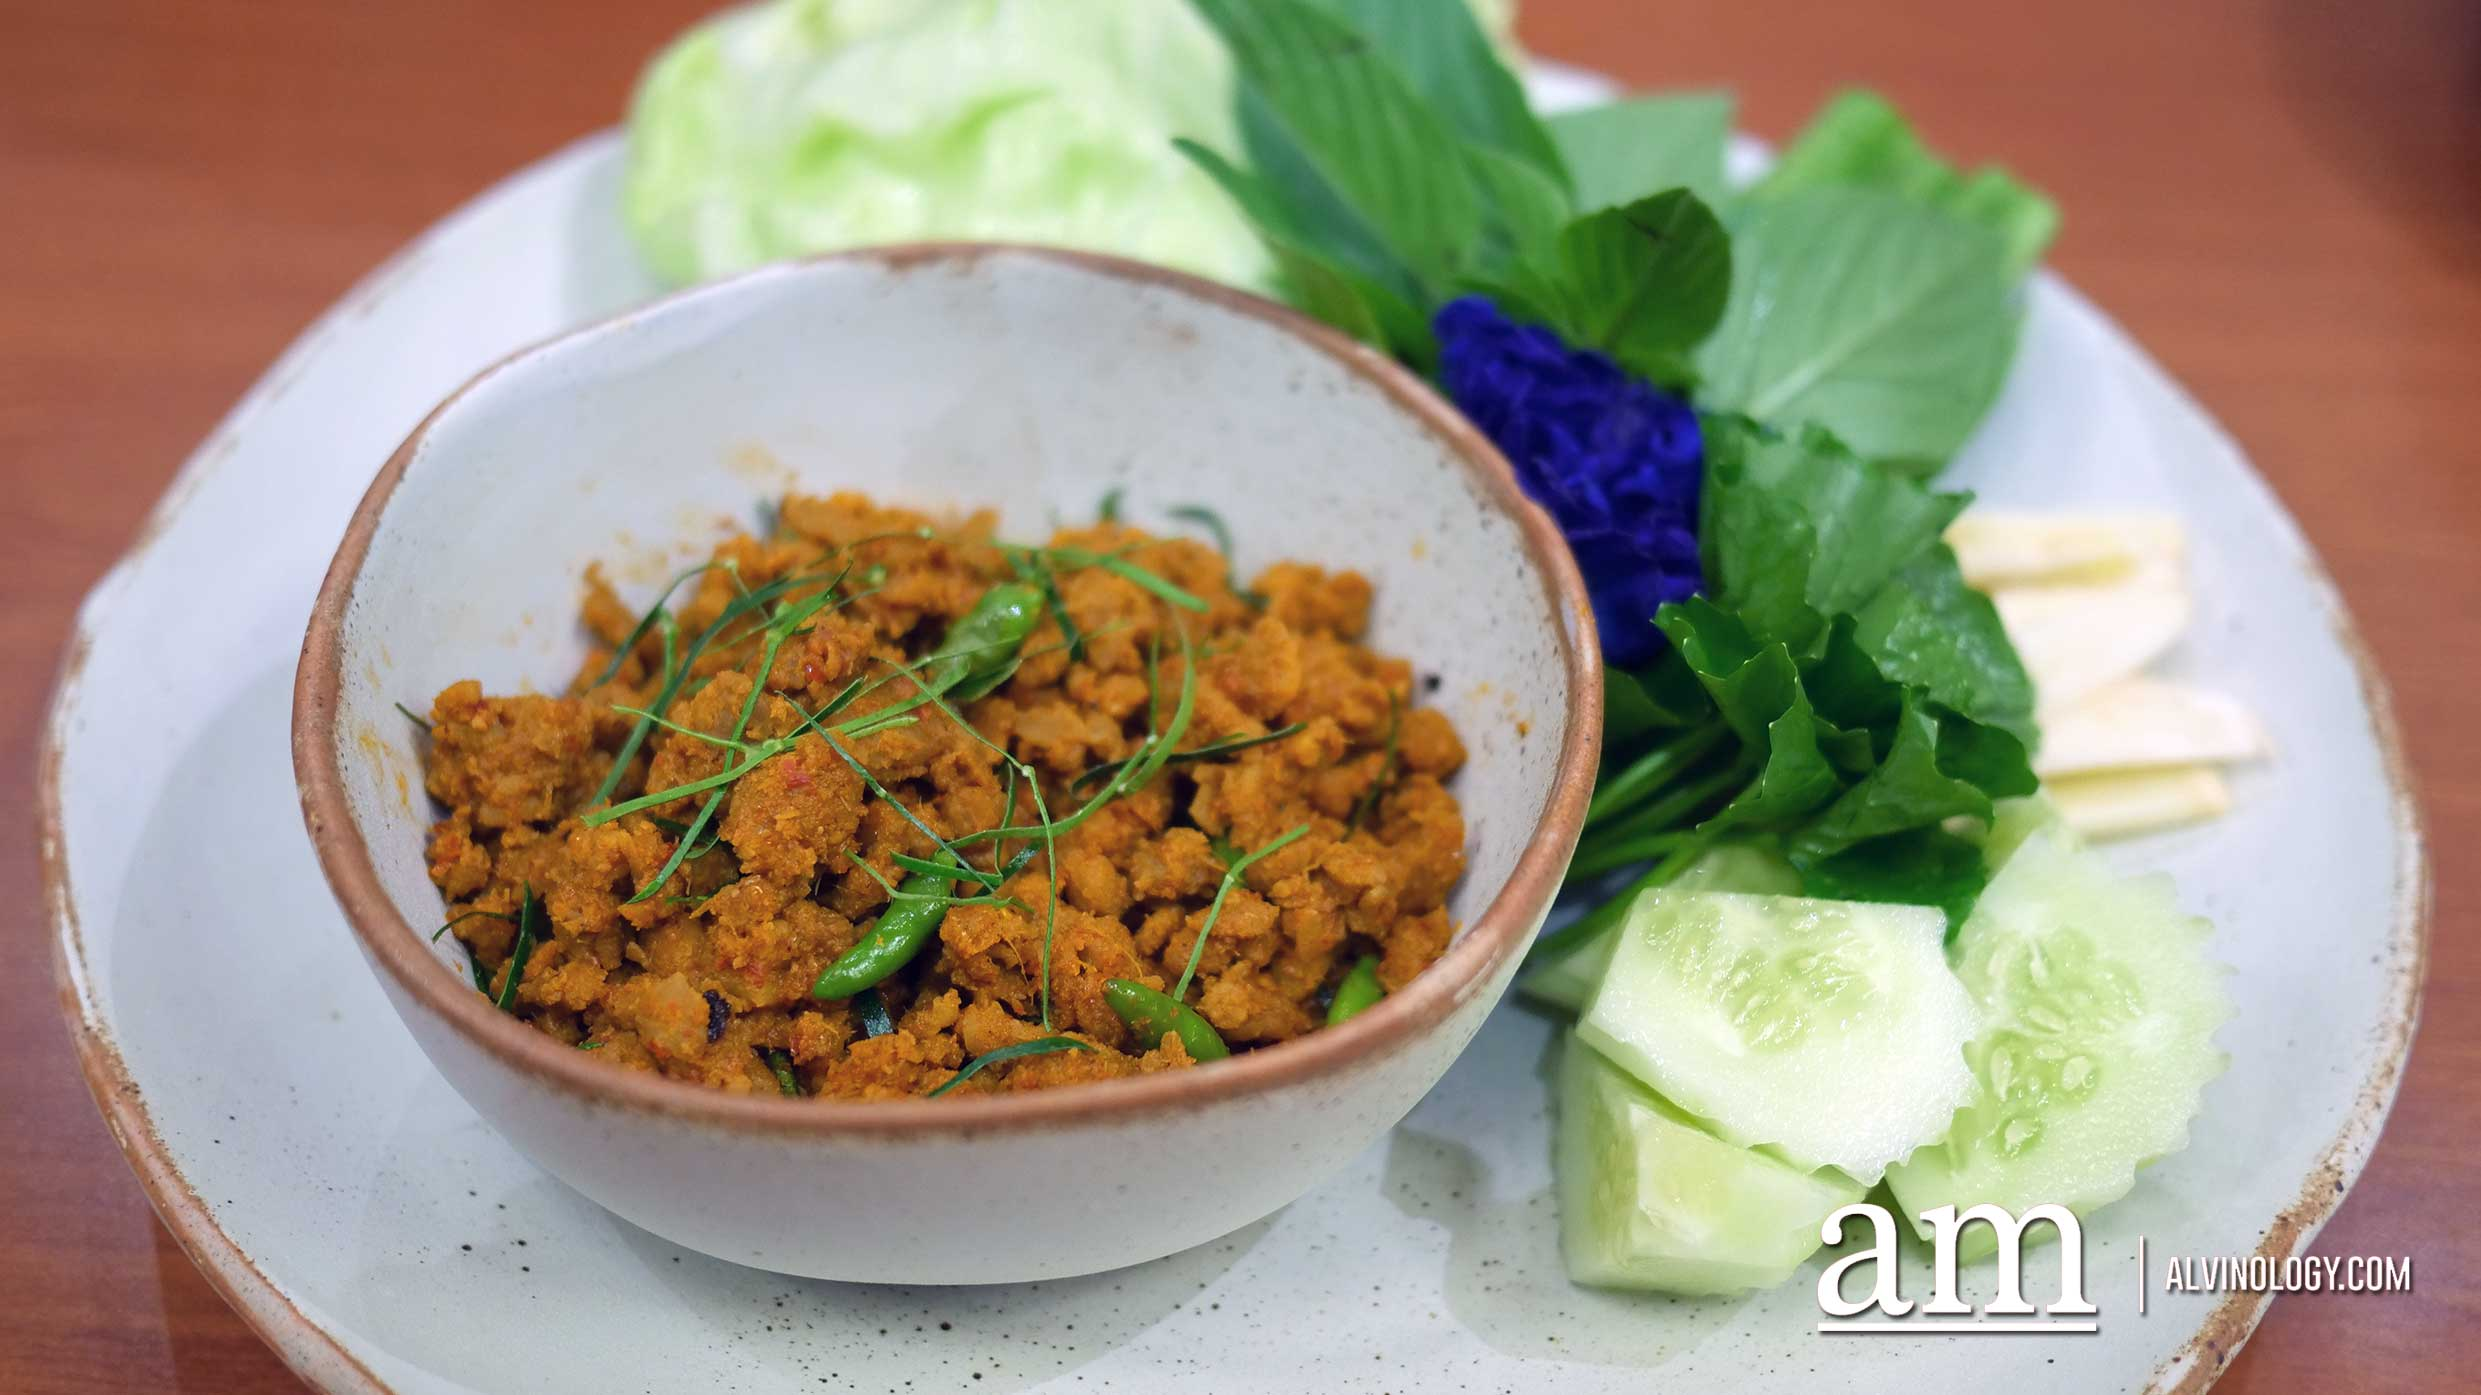 Signature Khua Kling Moo Sab (stir-fried spicy Southern Thai style dry Khua Kling curry with minced pork)